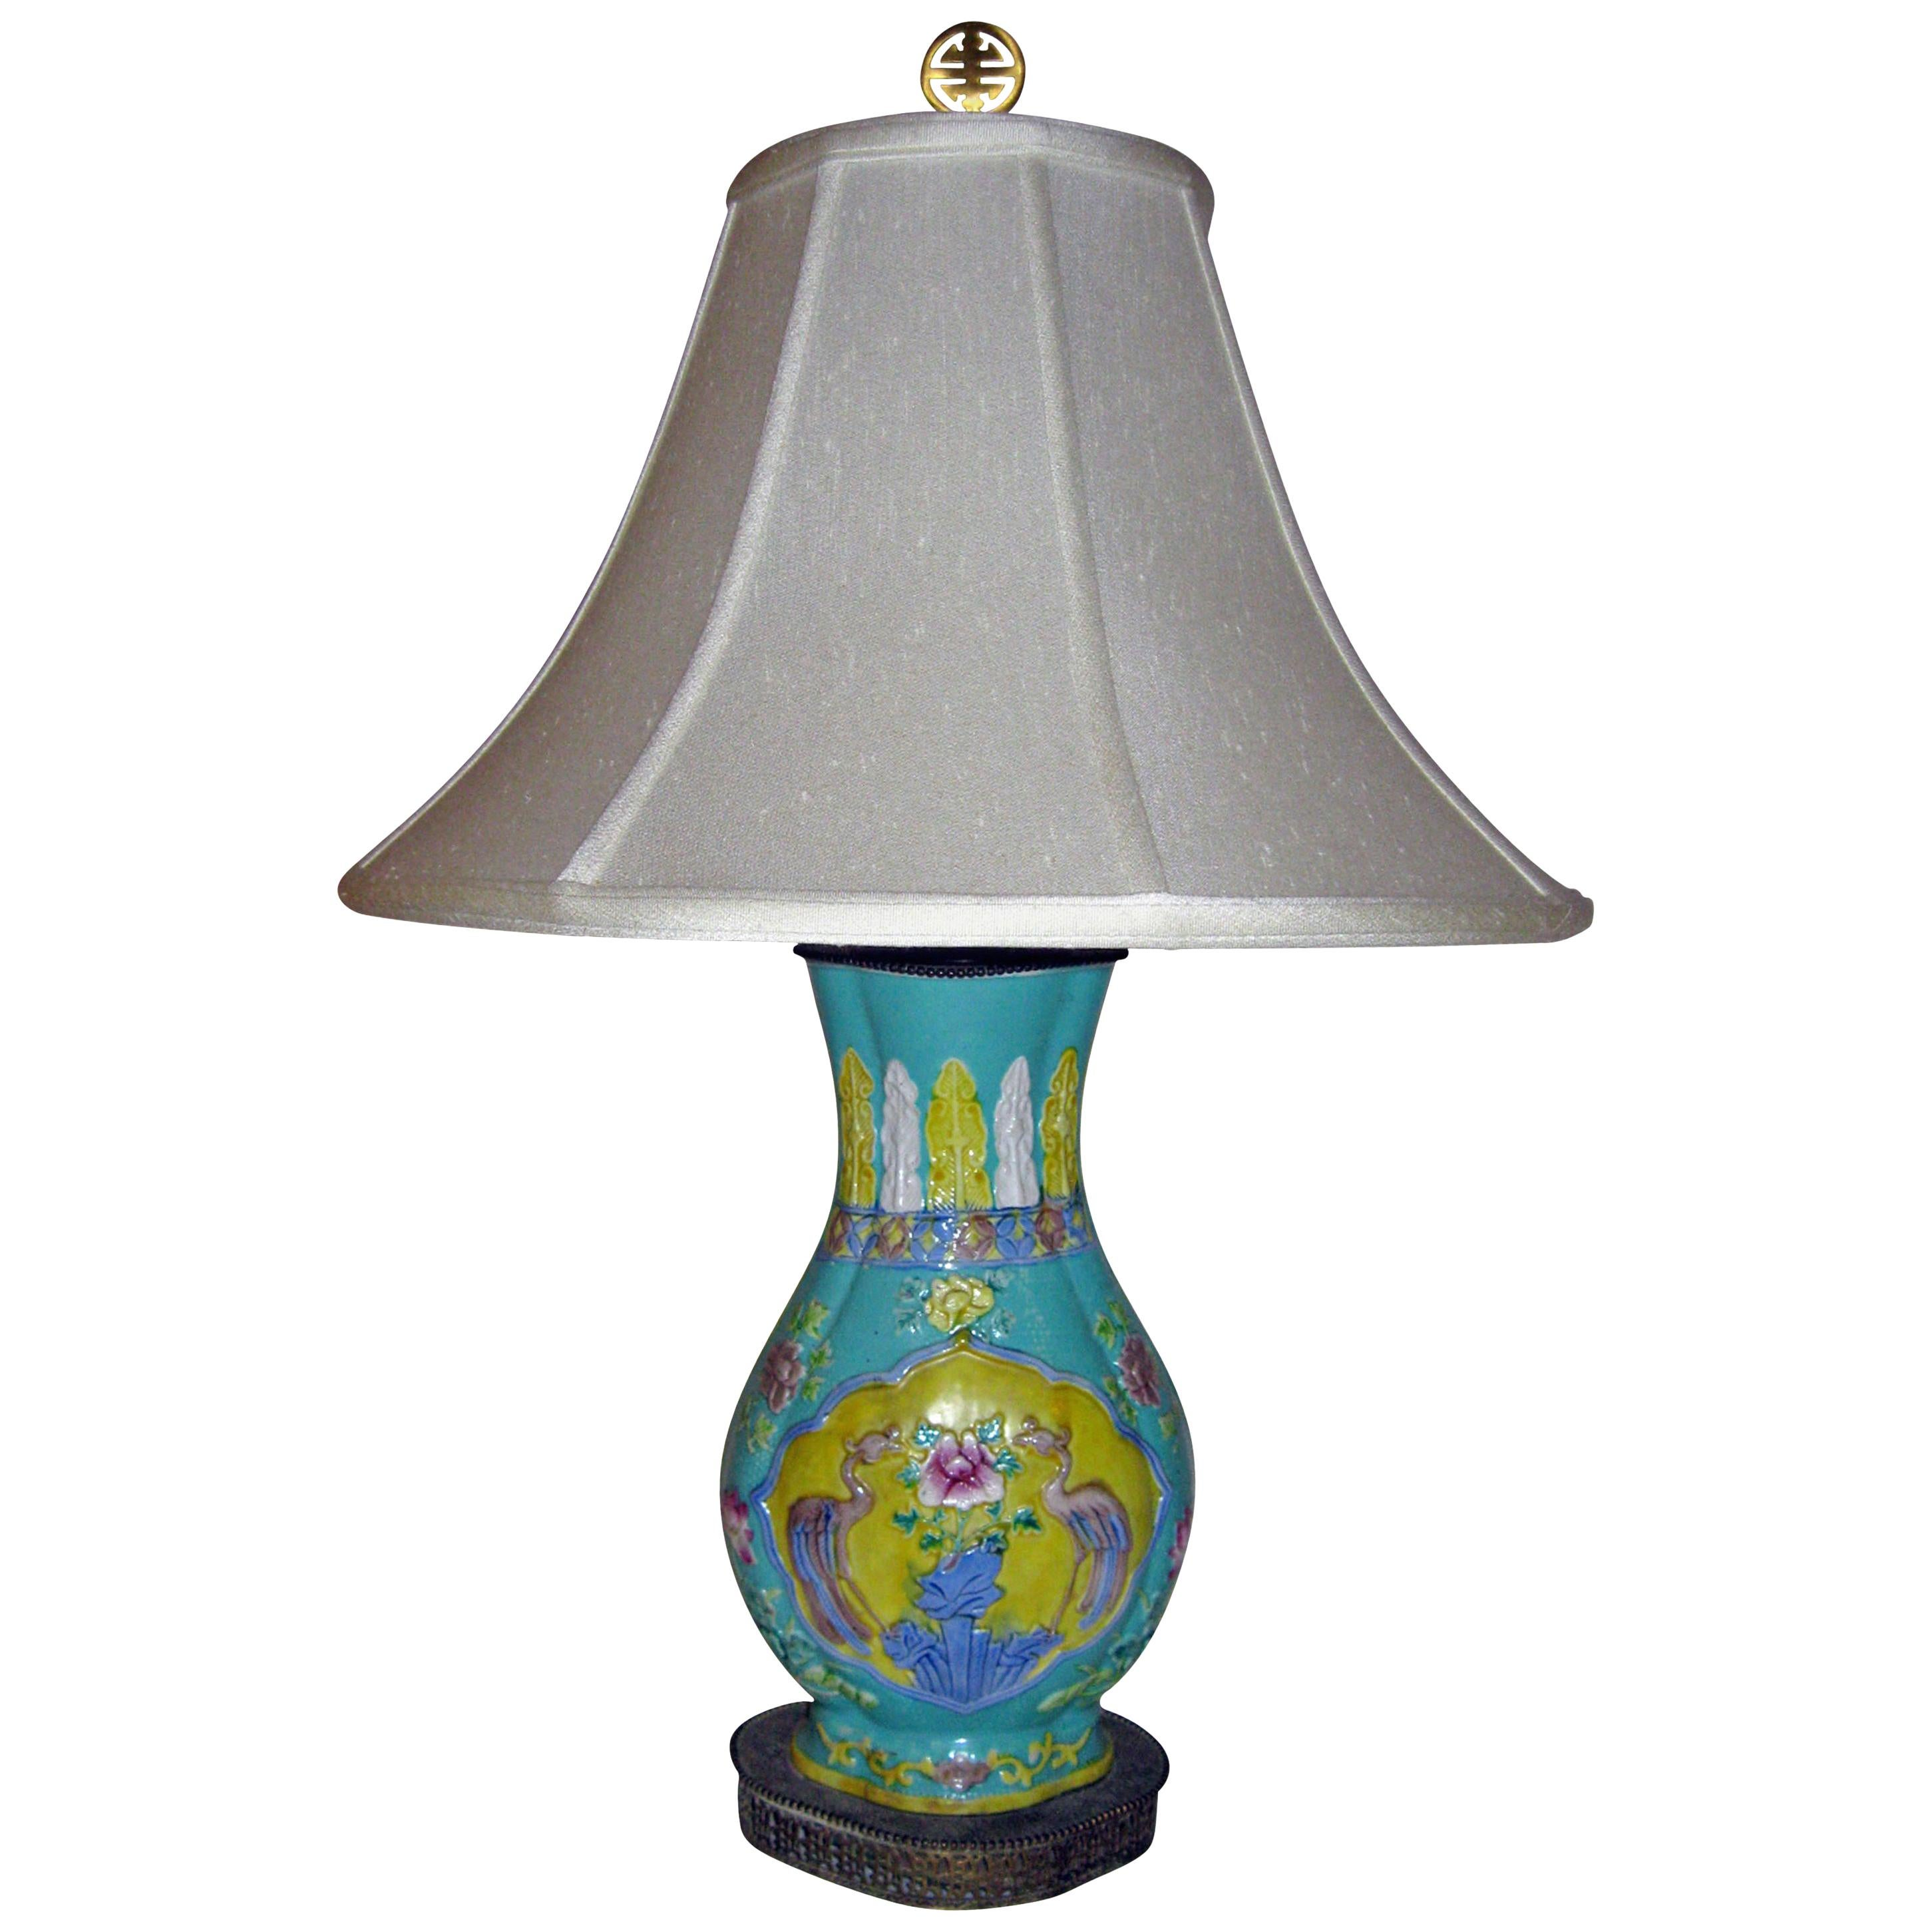 19th Century Chinese Export Royal Crane Vase Table Lamp